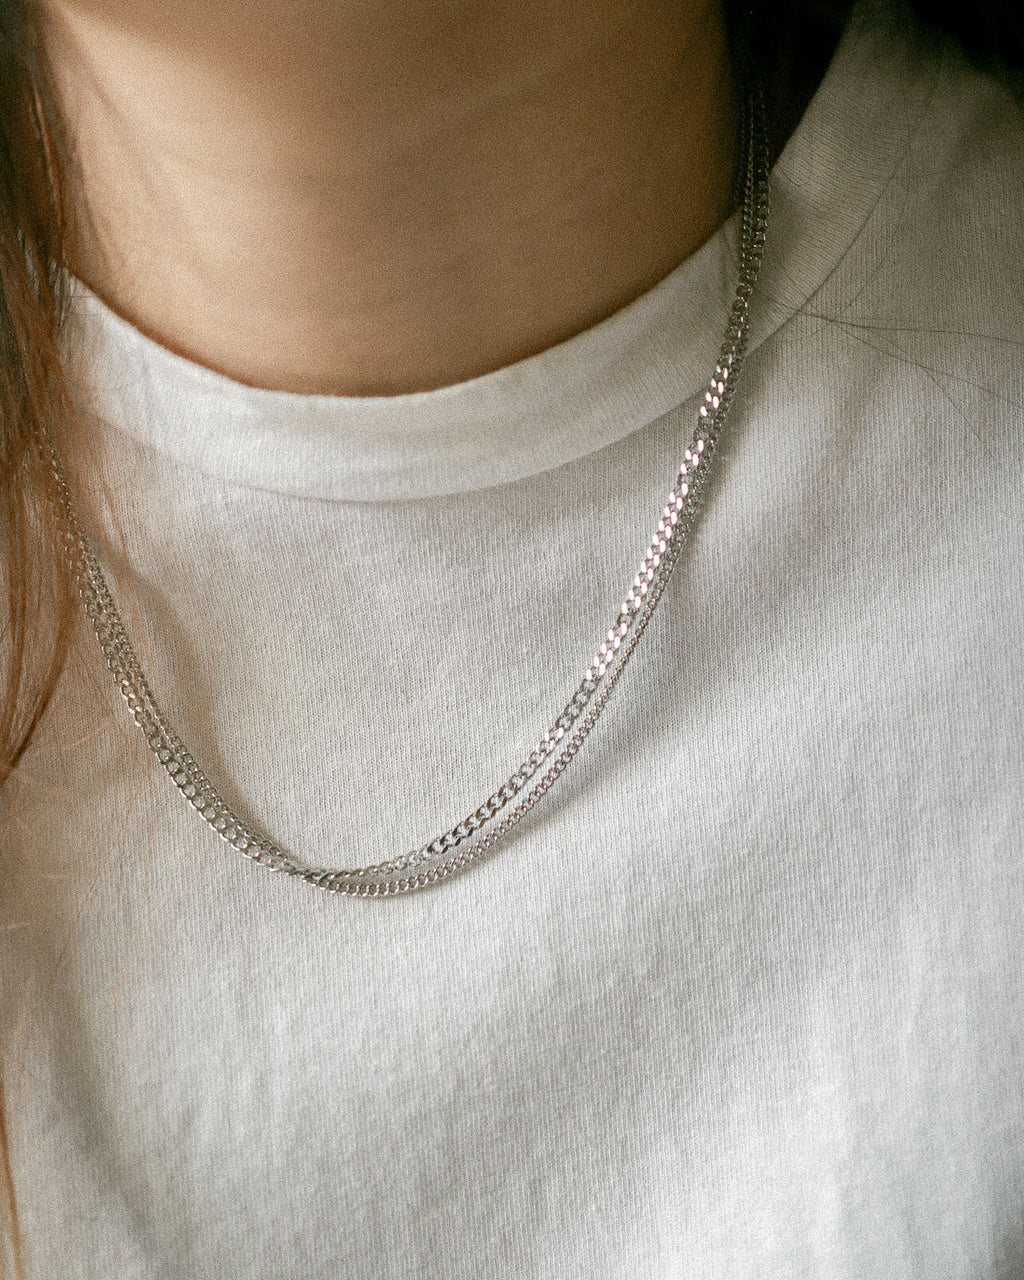 Simple silver chain necklaces in varying thickness for layering together - The Hexad